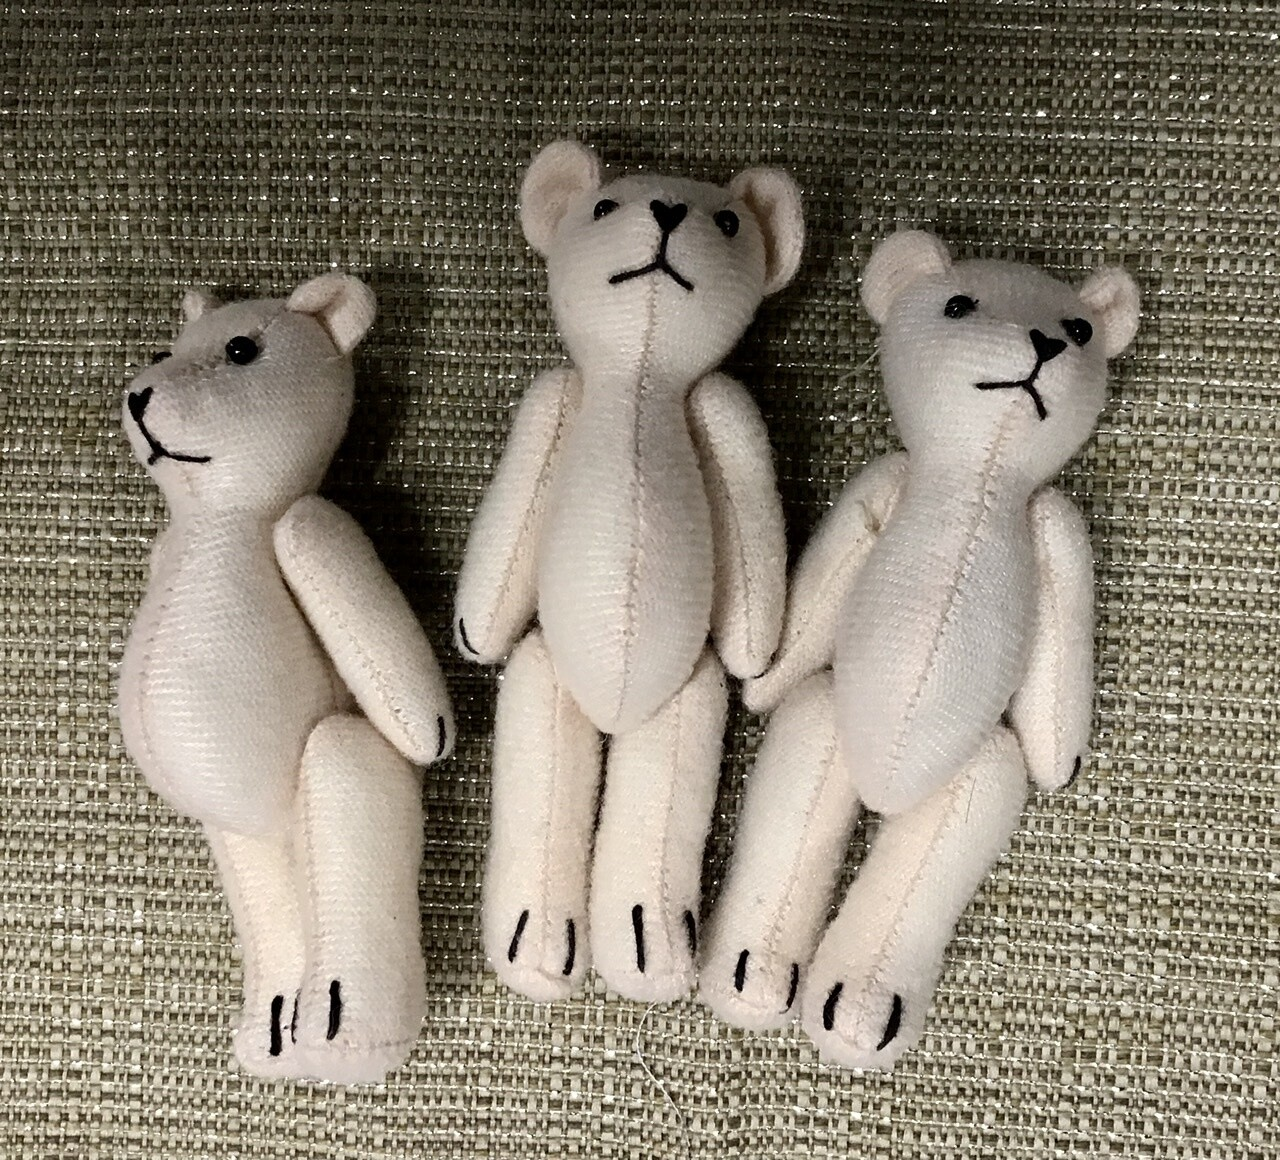 Three Fabric Teddy Bears - Cream